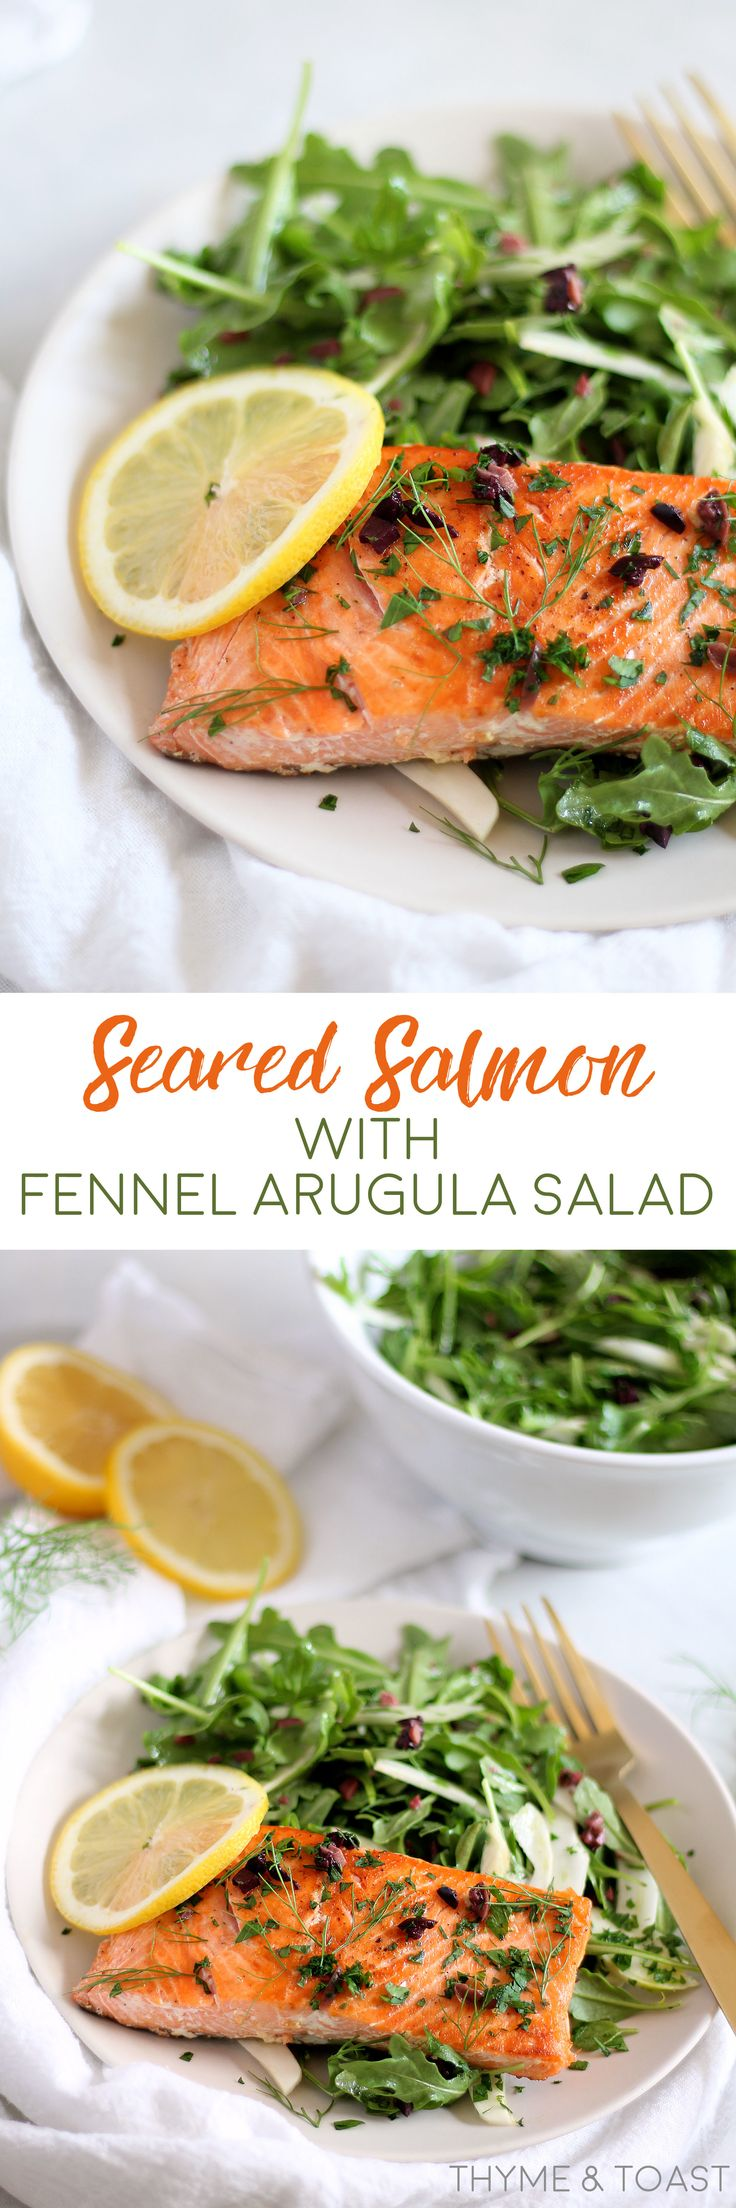 25 best ideas about side dishes with salmon on pinterest sides with salmon salmon sides and. Black Bedroom Furniture Sets. Home Design Ideas